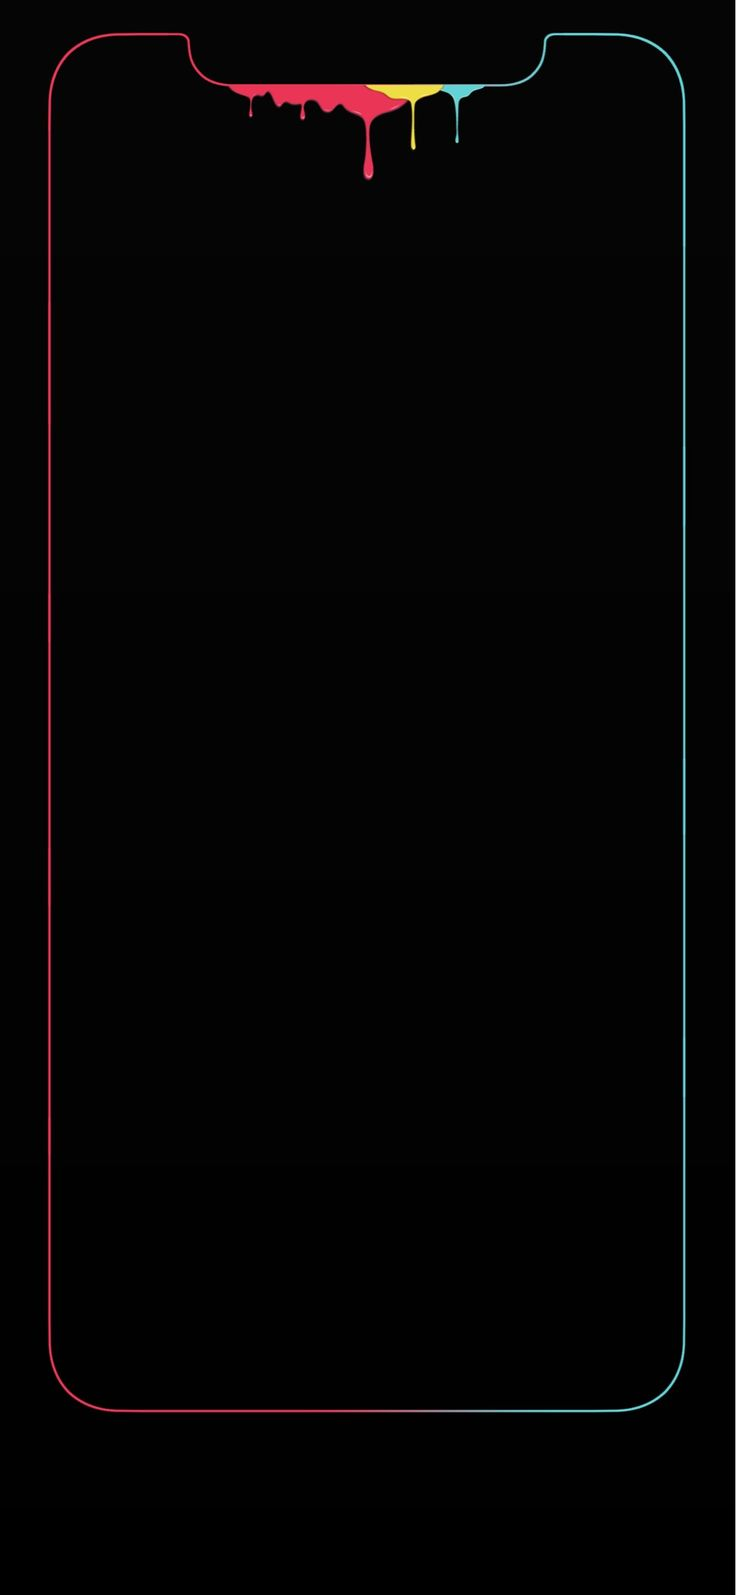 The iPhone X/Xs Wallpaper Thread – Page 53 – iPhone, iPad, iPod Forums at iMore….